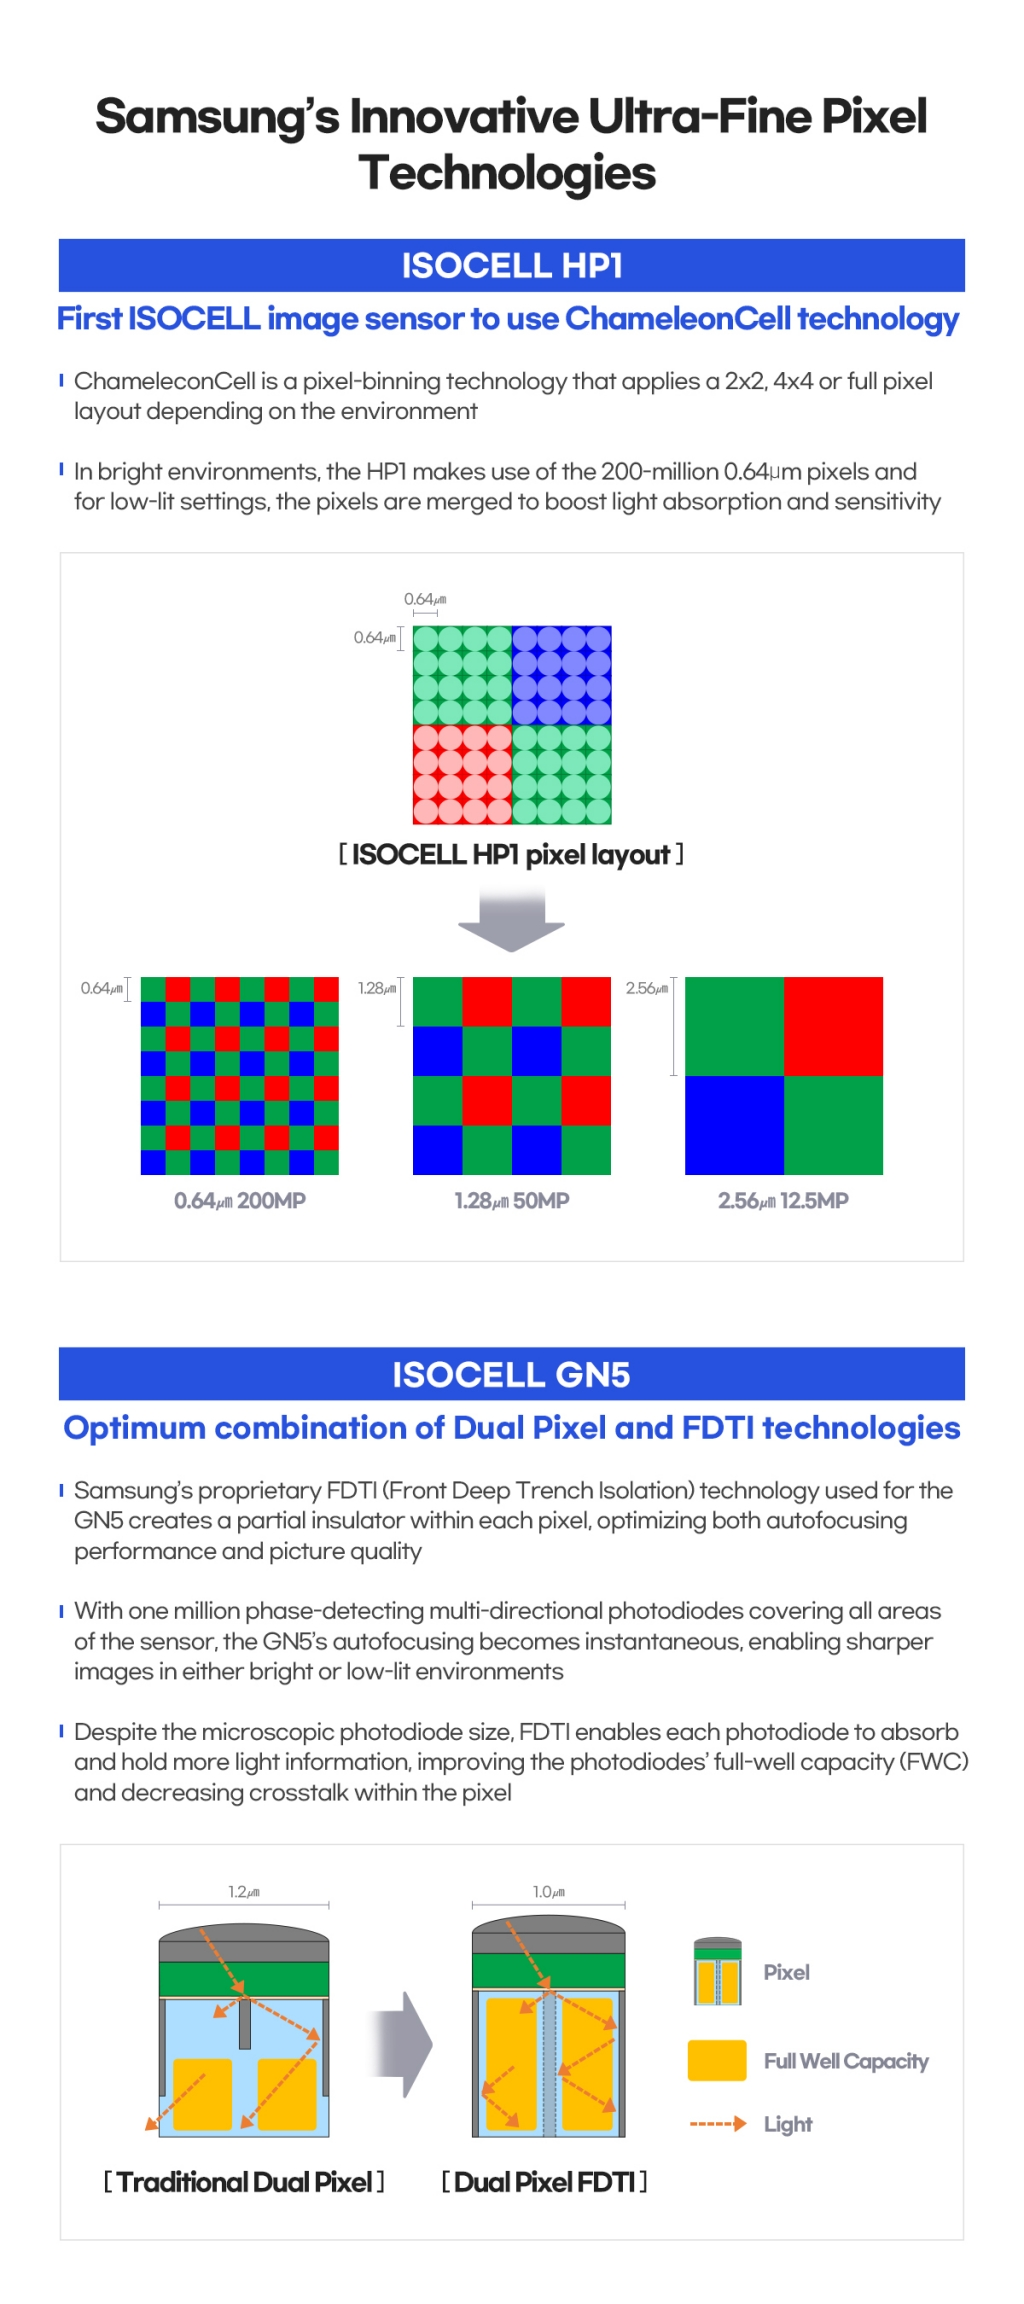 Samsung Brings Advanced Ultra-Fine Pixel Technologies to New Mobile Image Sensors